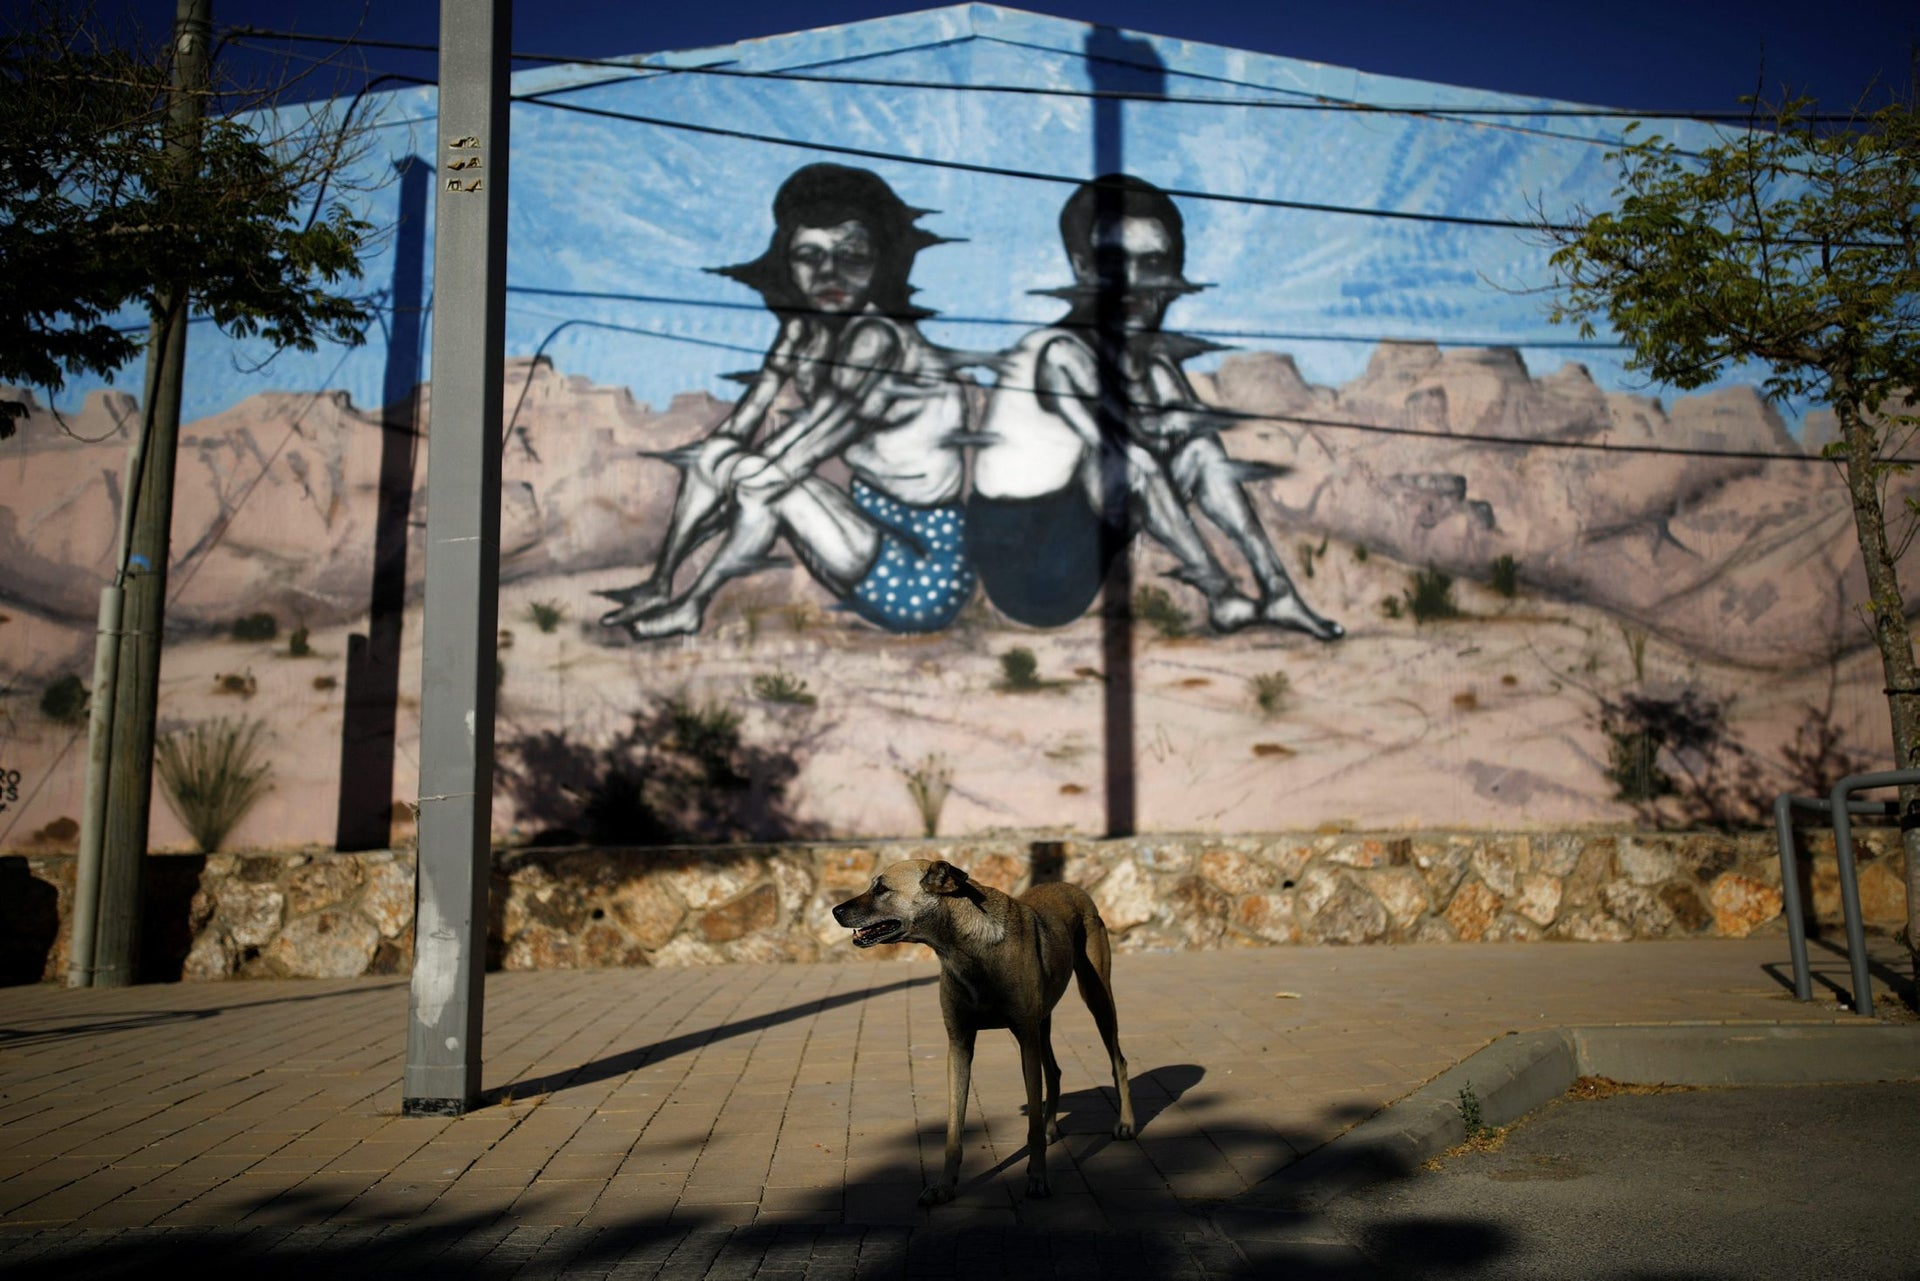 A dog stands near a wall painting by American-Israeli artist Zero Cents during POW! WOW! Israel in Arad, June 5, 2017.